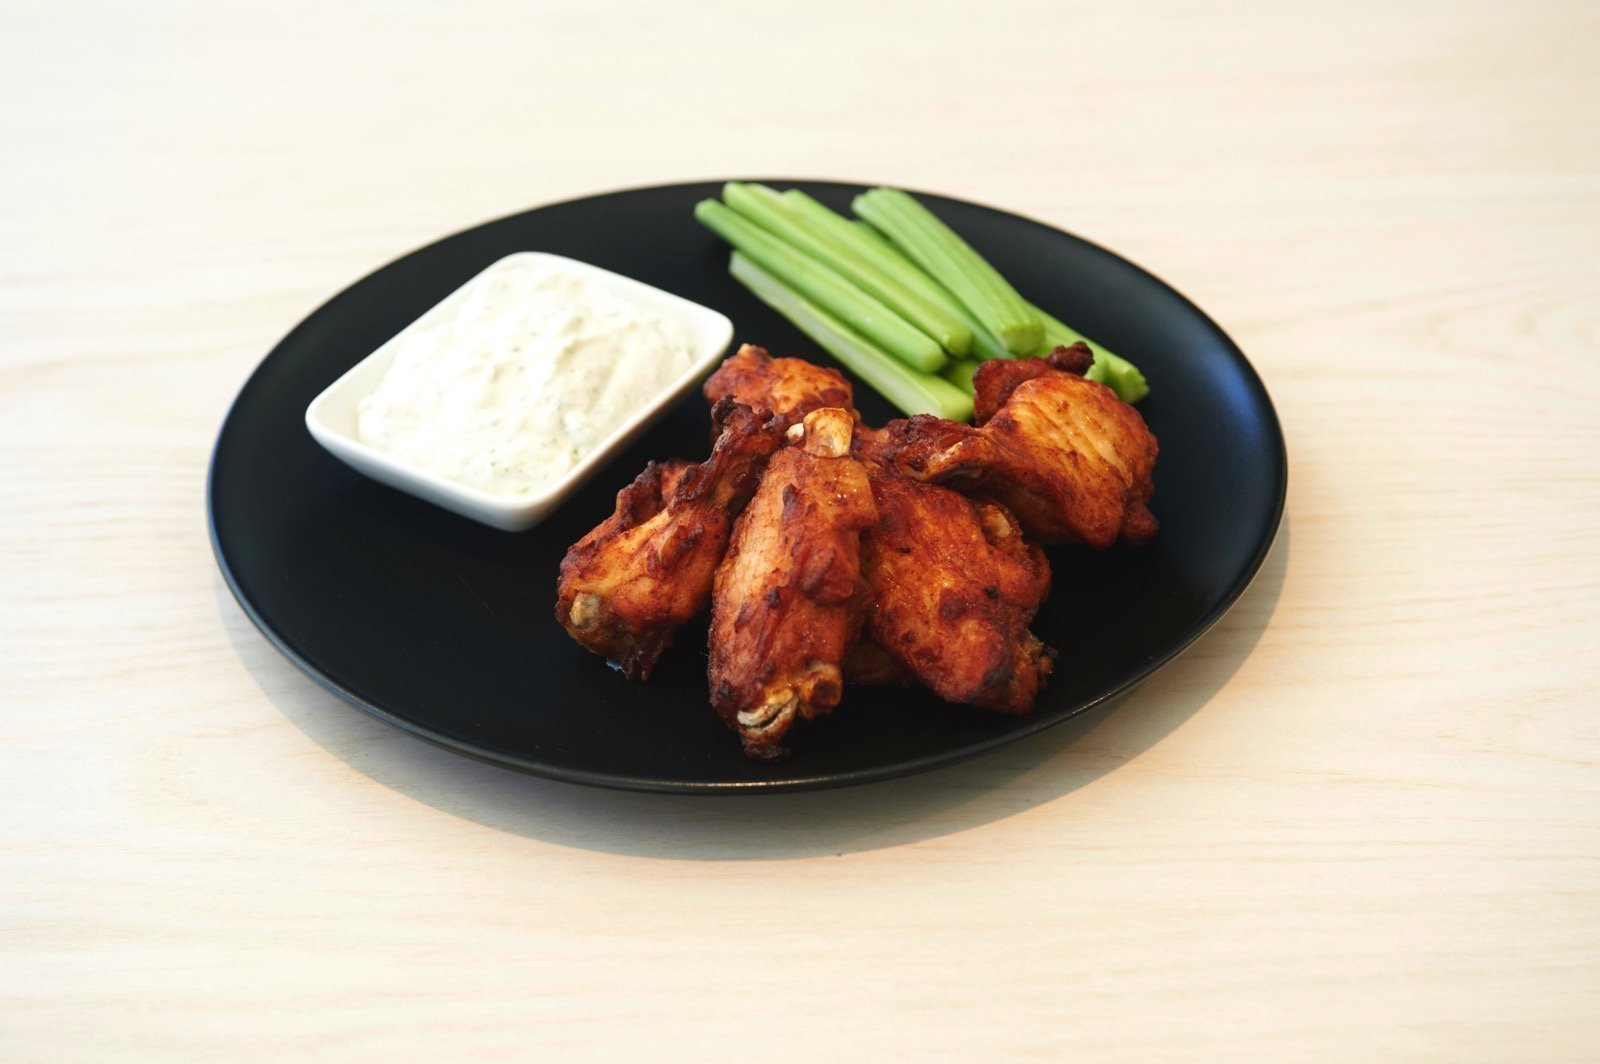 Mexican chicken wings with blue cheese sauce with yoghurt and honey